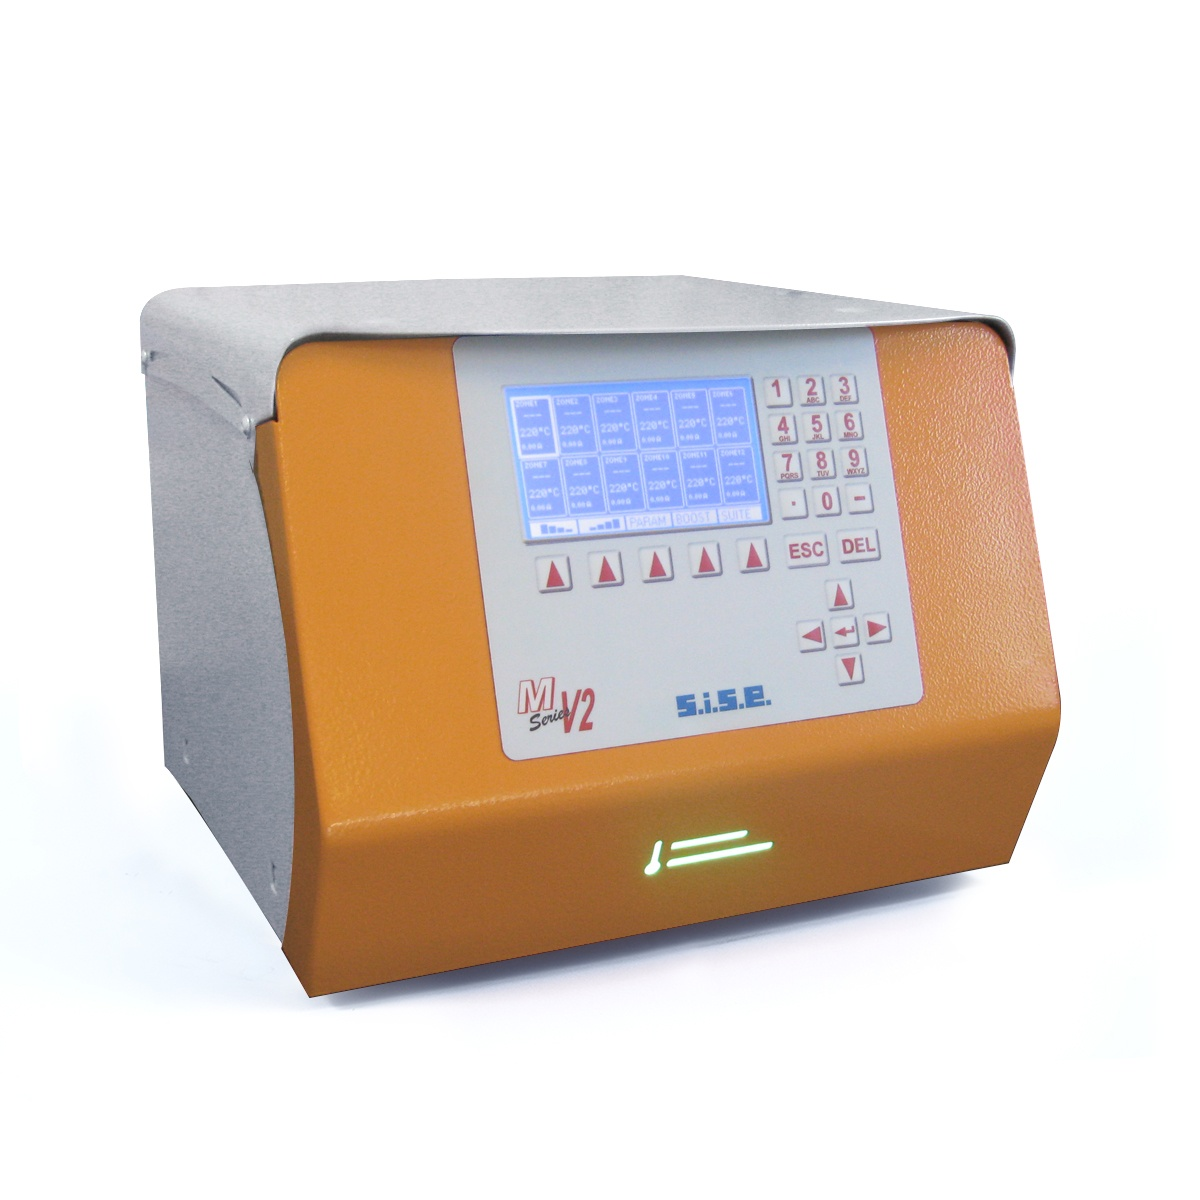 Multizone Hot Runner Temperature Controller SISE MV2 Type XS-LCD